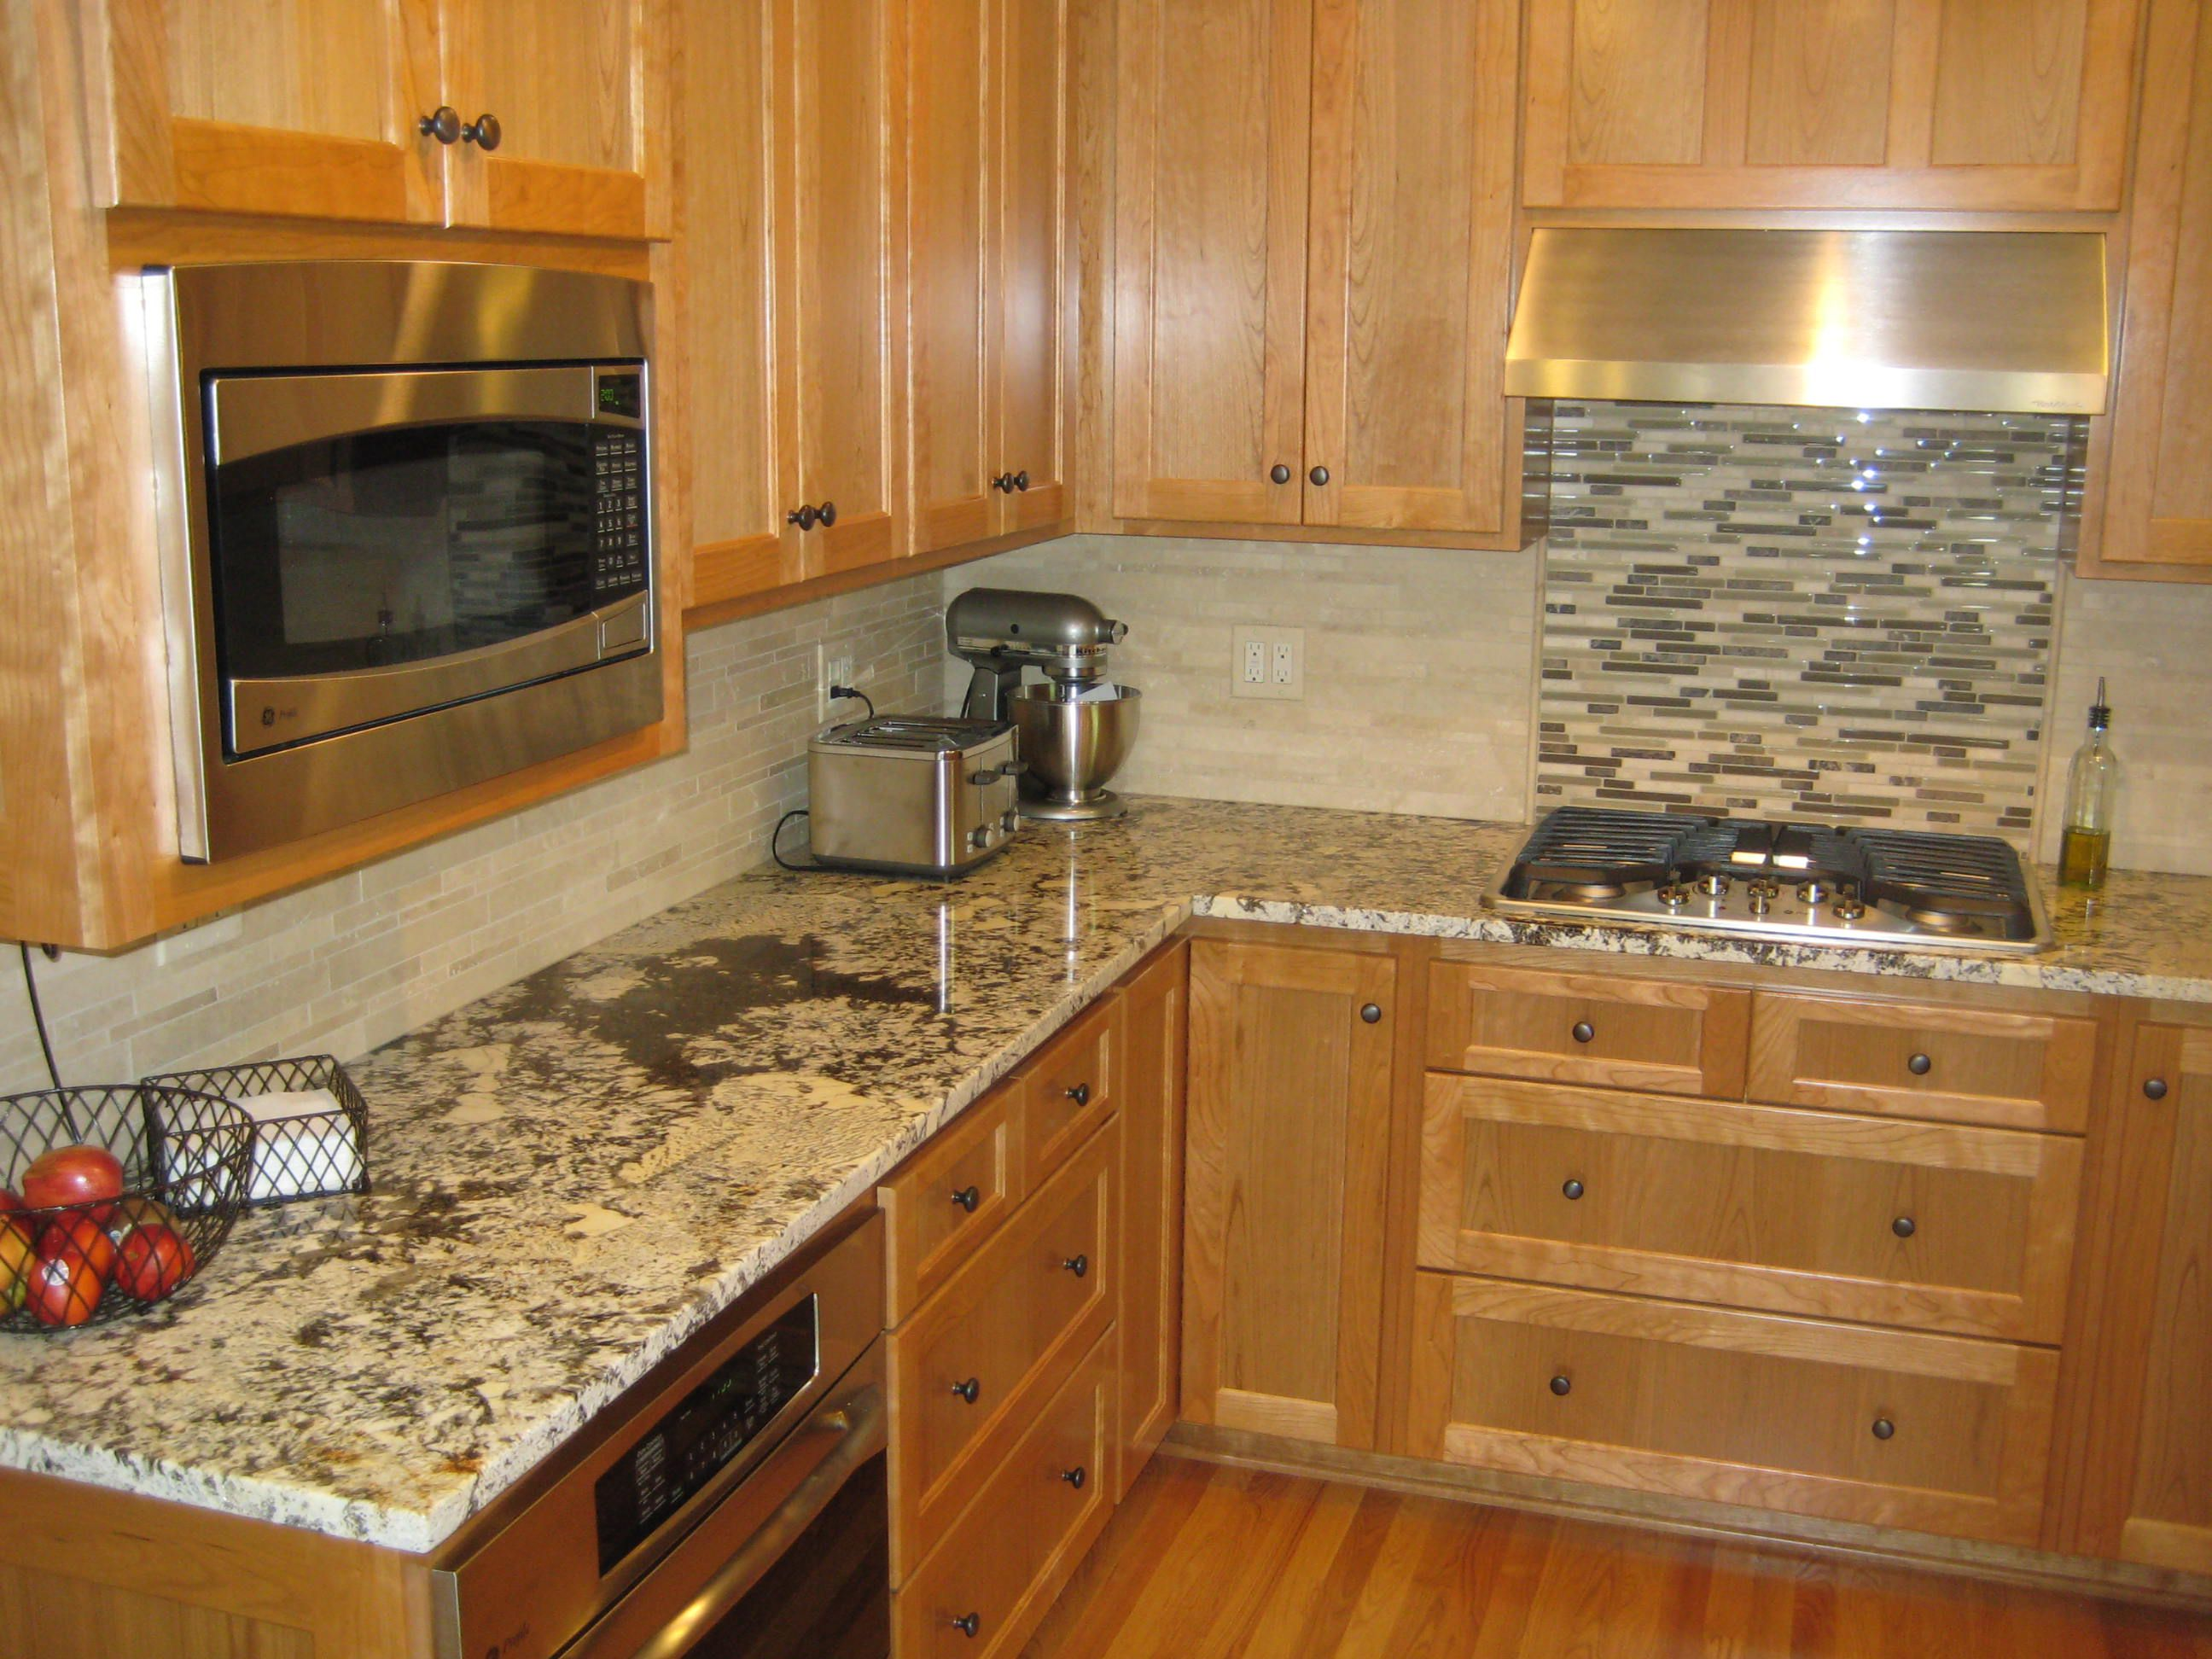 Lovely Design Of The Brown Wooden Cabinets Added With Grey Marble Tops And Grey Tile Backsplash Ideas